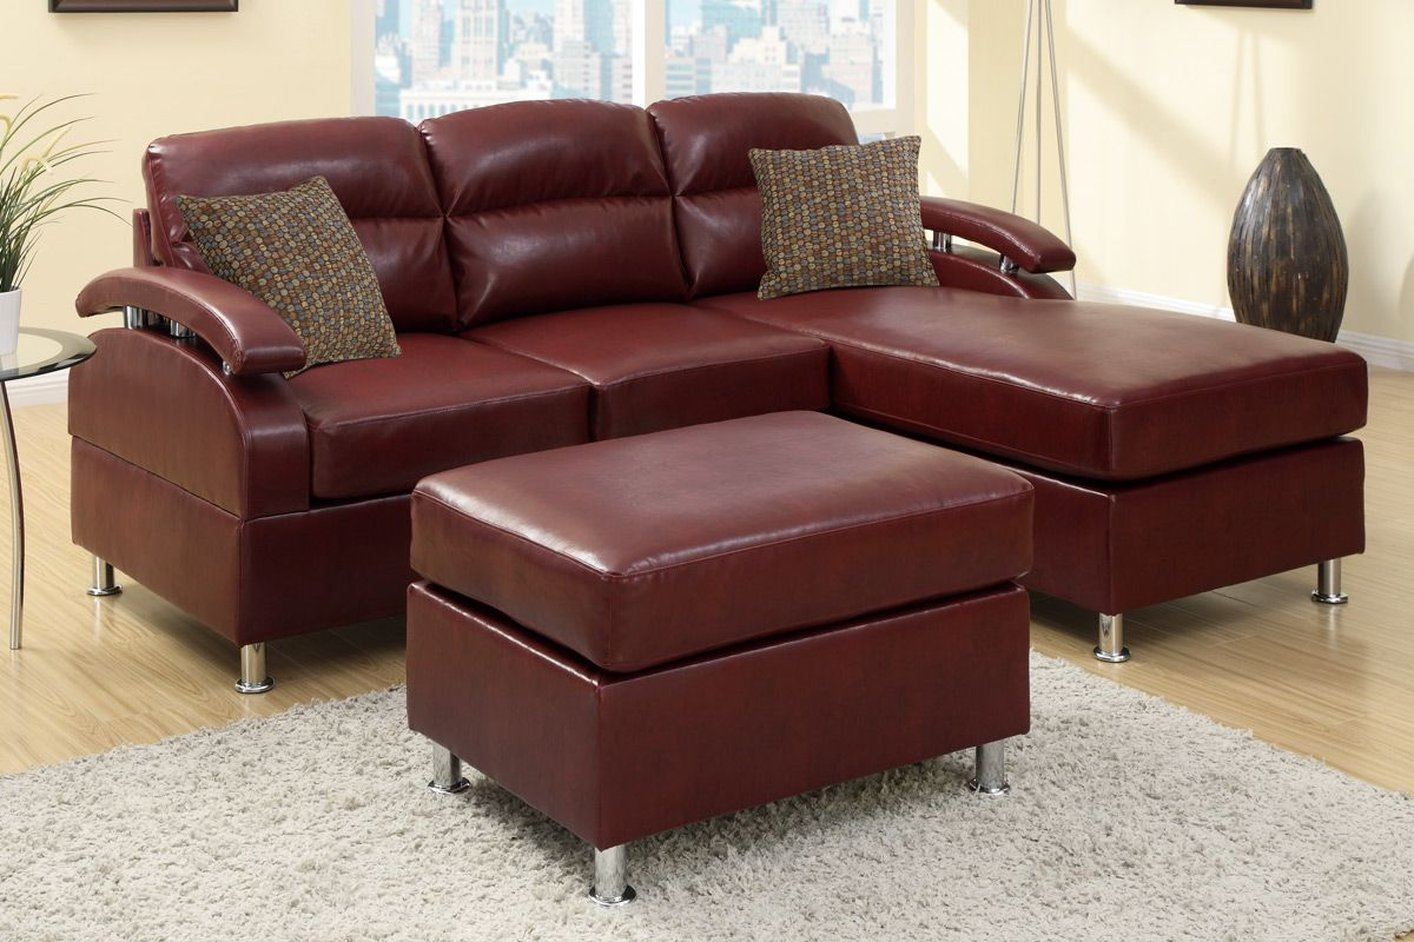 red metal sectional sofa and ott steal furniture burgundy bonded leather with kade accent table solid cherry kitchen bird ikea wall cabinets bedroom gazebo marble bistro